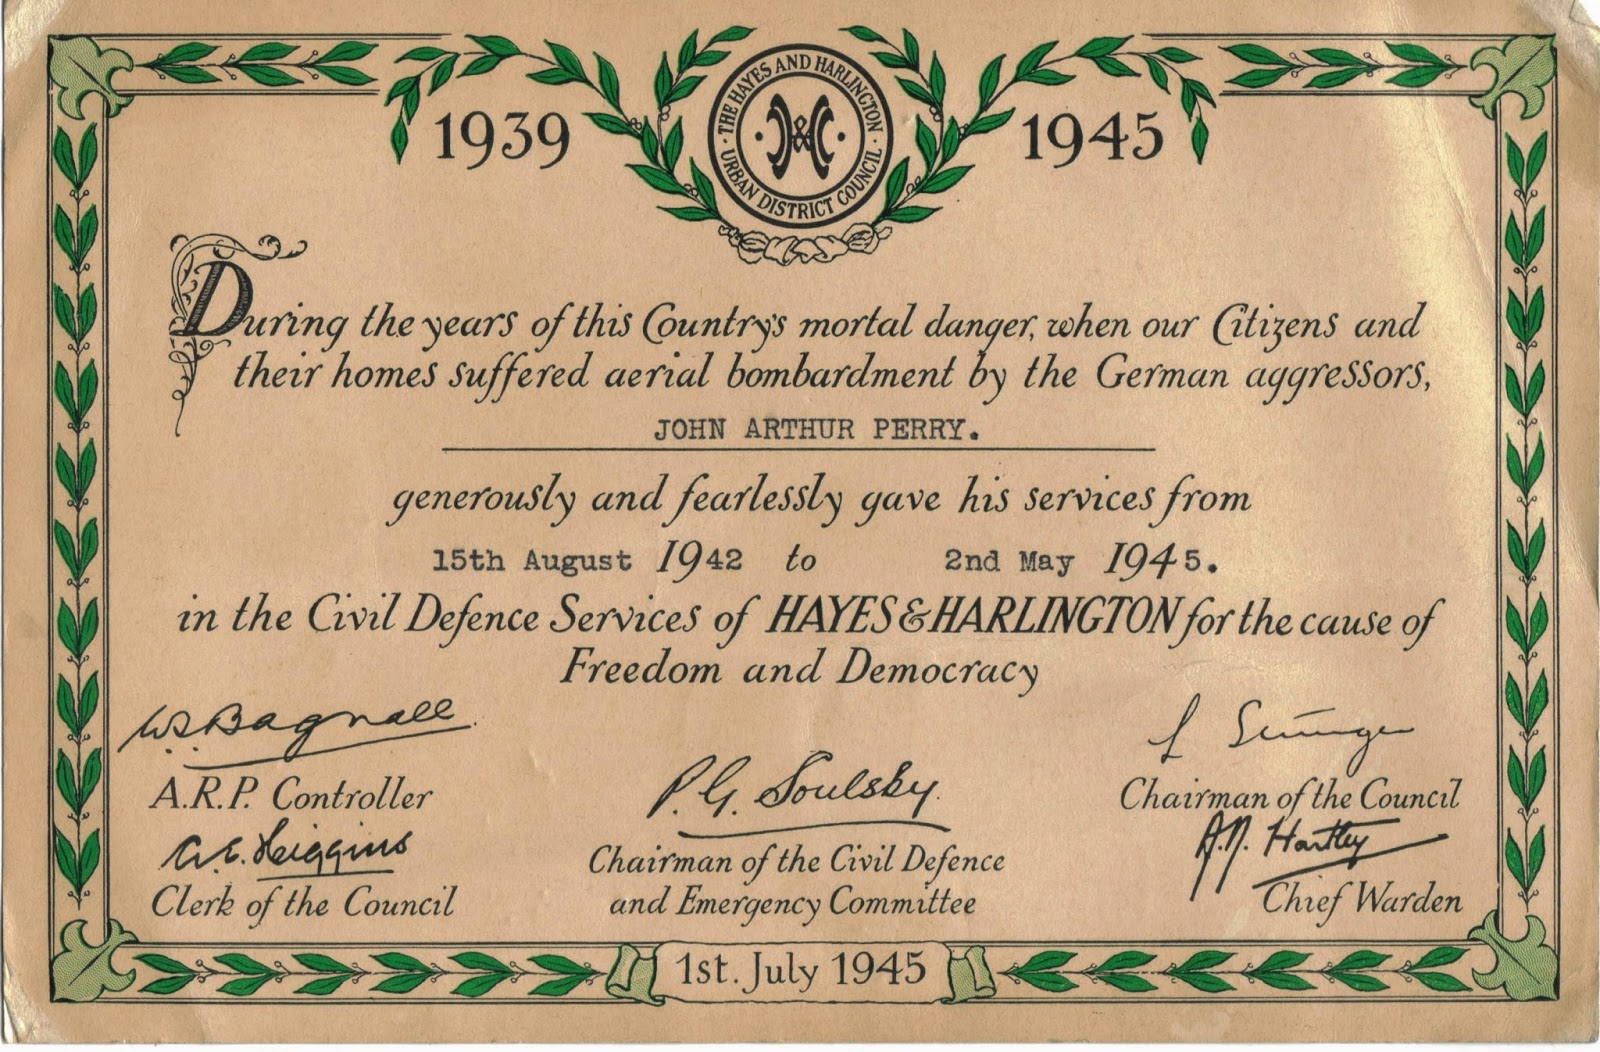 Civil Defence Certificate 1939-1945